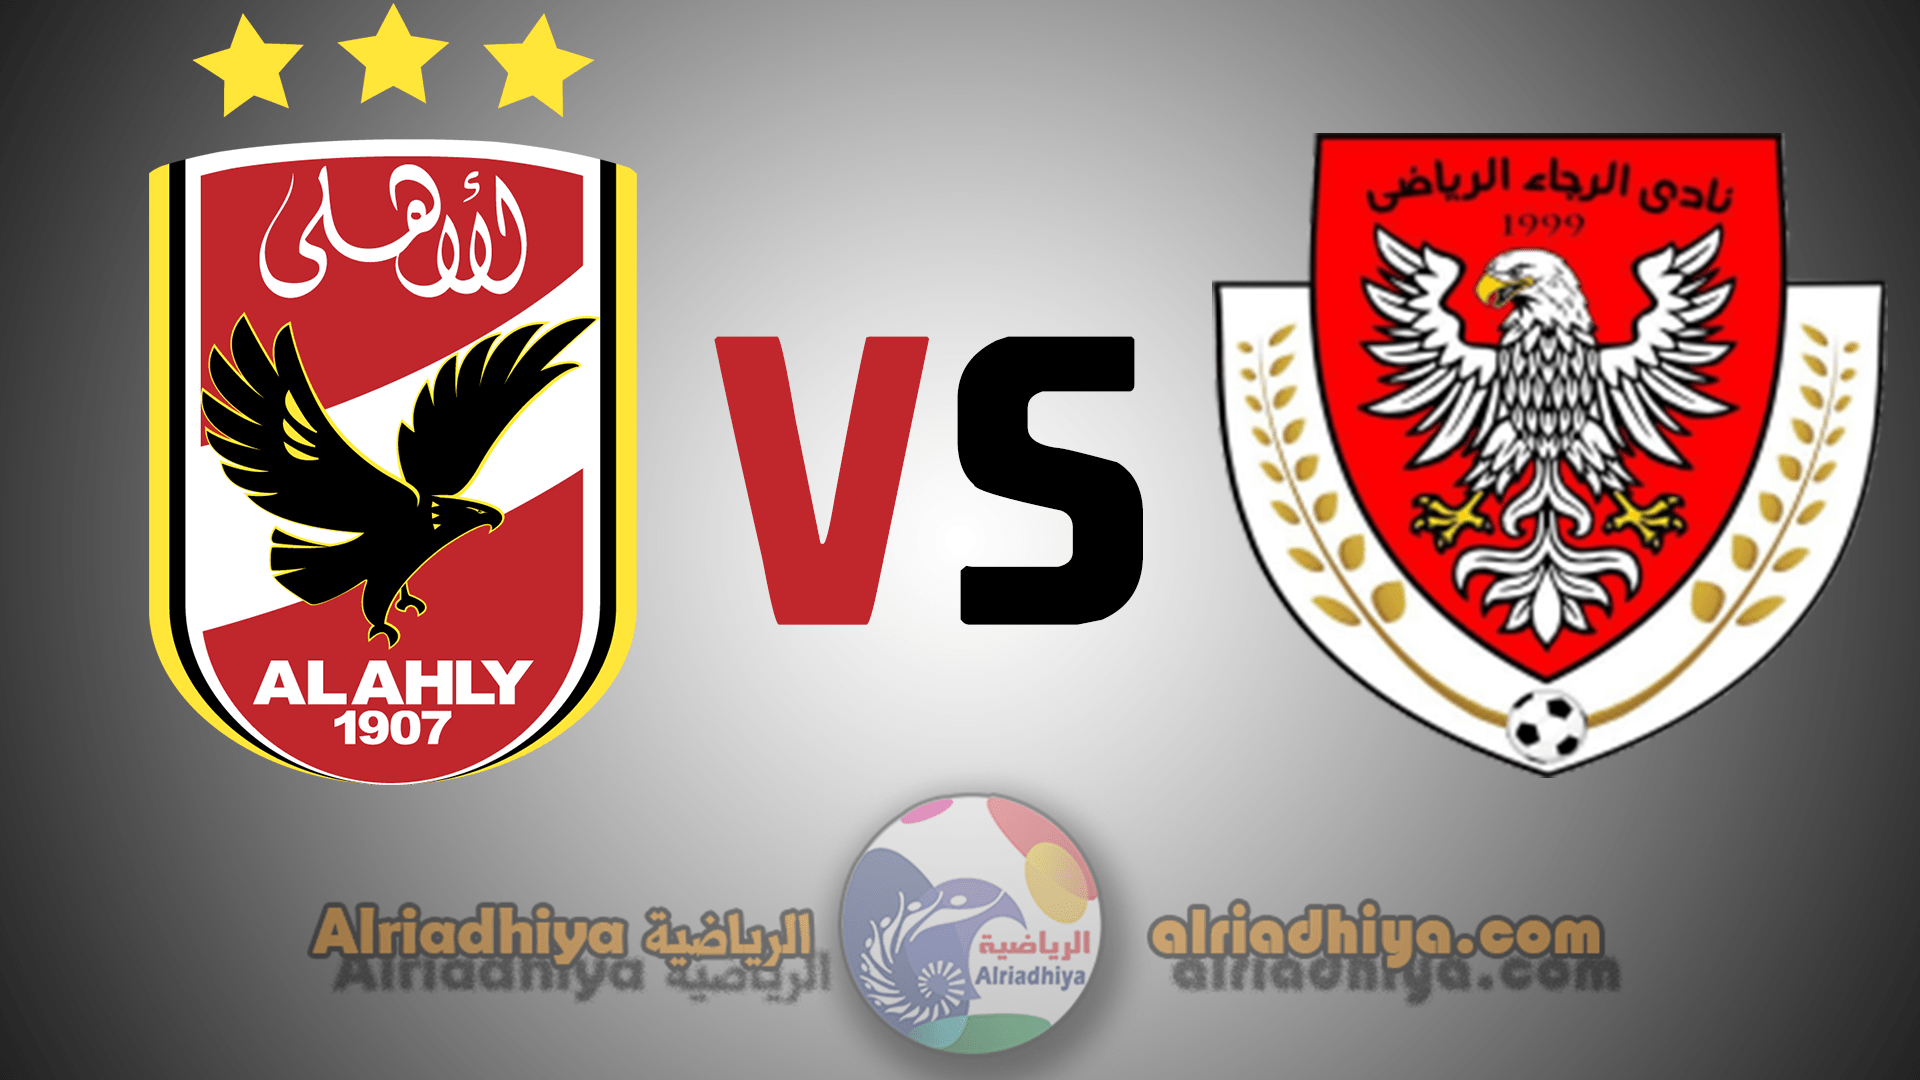 AL AHLY LIVE WALLPAPERS